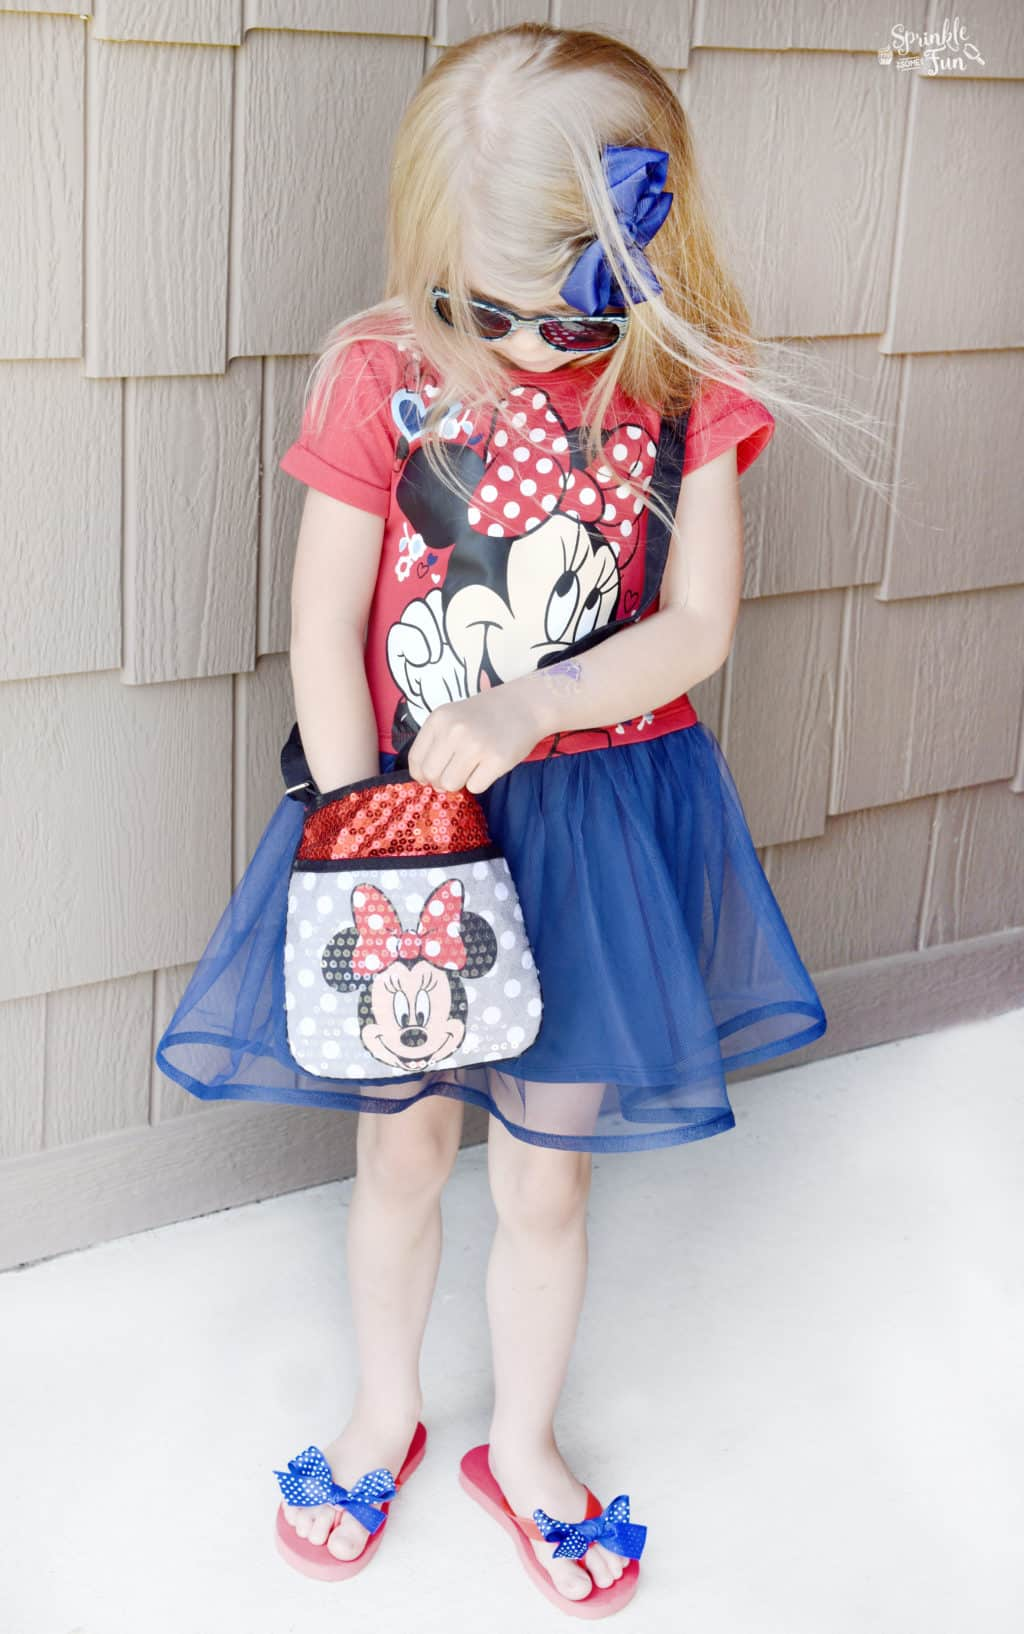 Fashionable Minnie Clothing for less! Girls Minnie Outfits!